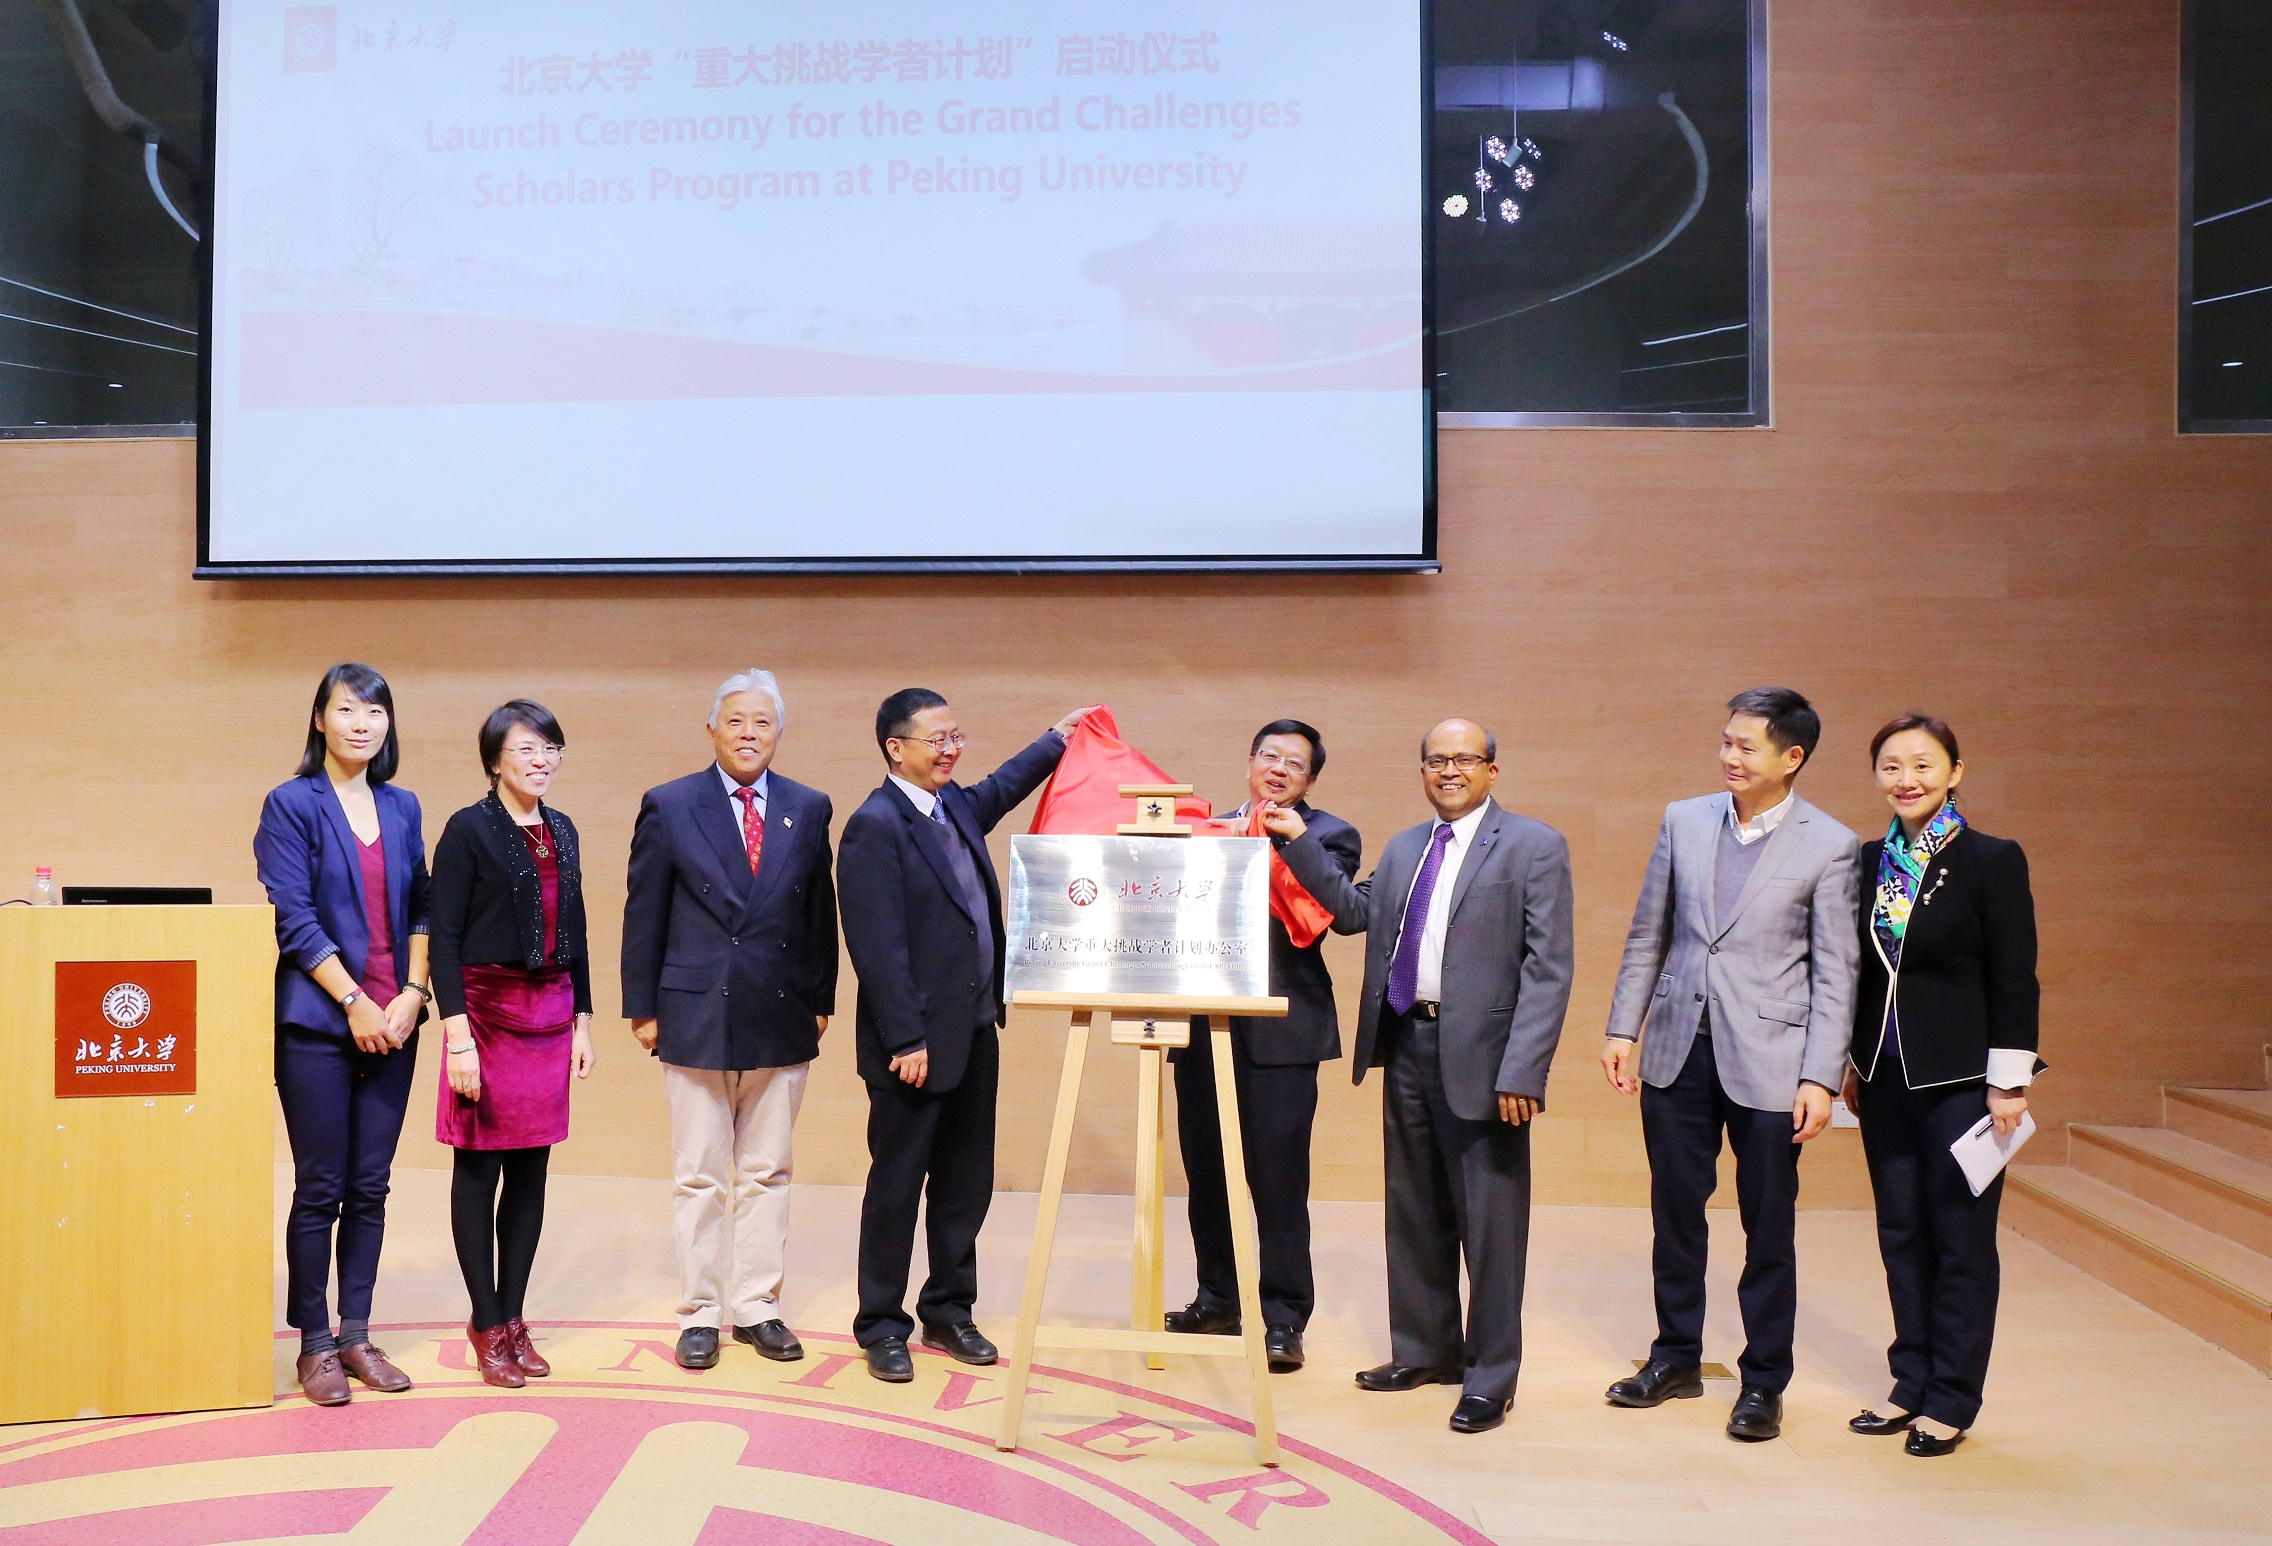 Grand Challenges Scholars Program Launched at Peking University, China